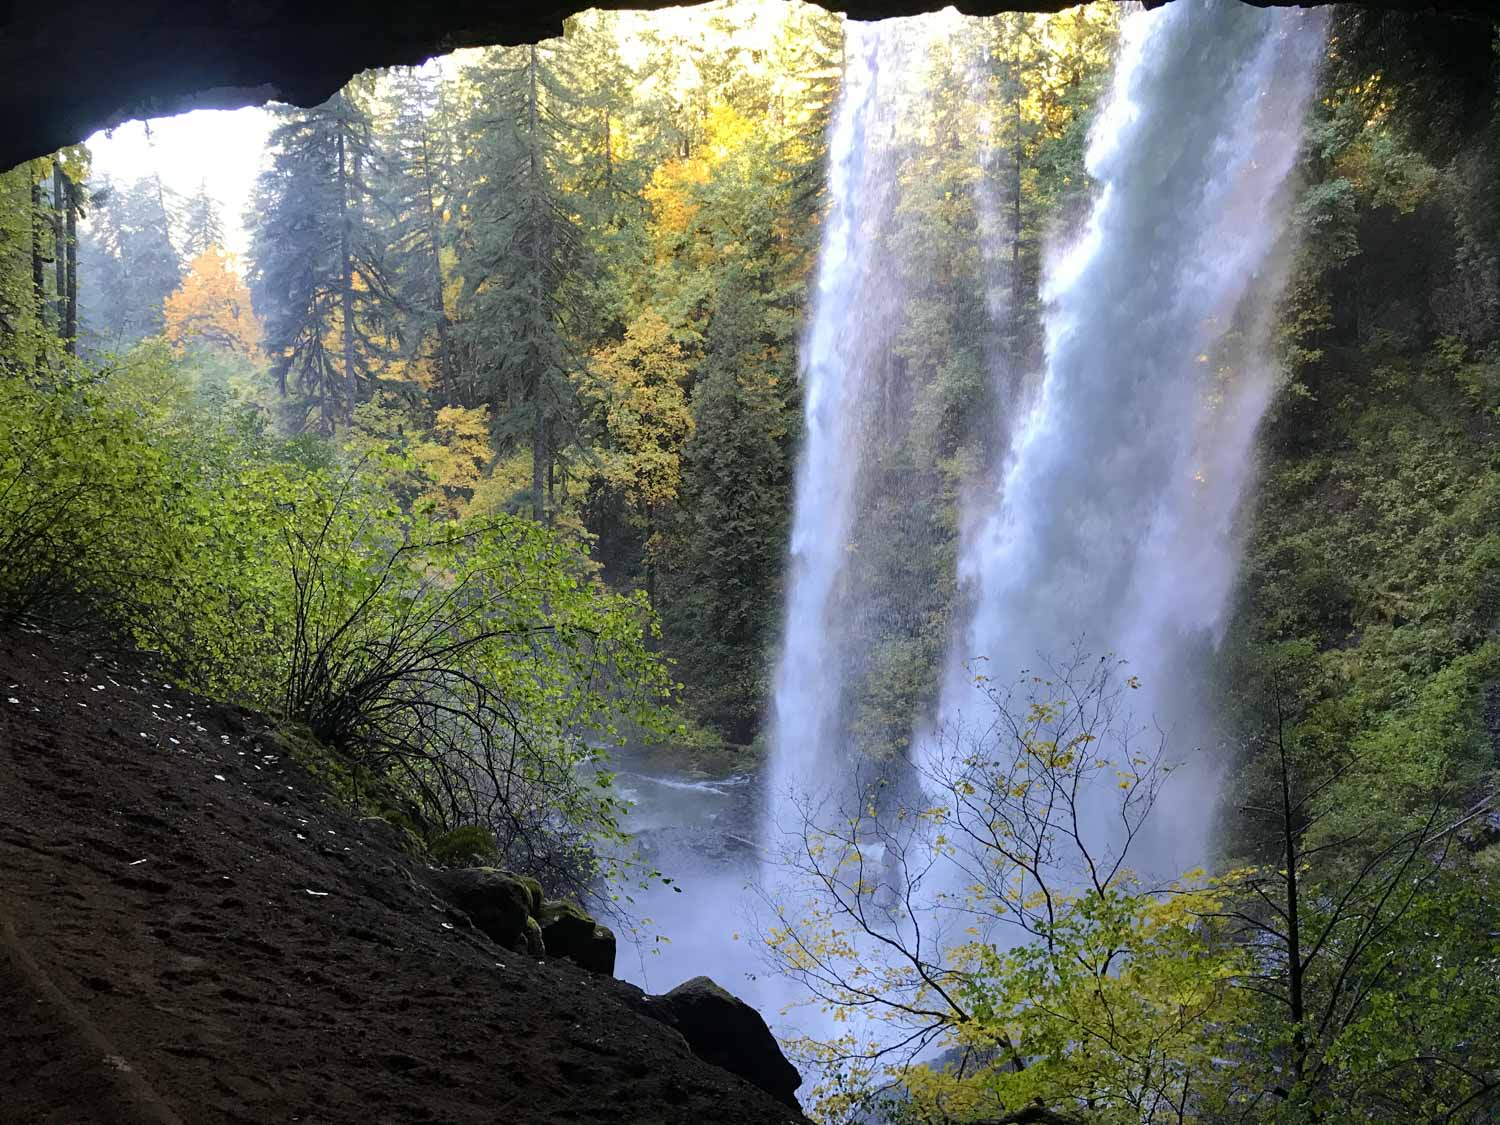 the South Falls of Silver Falls State Park, as seen from a cave behind the falls